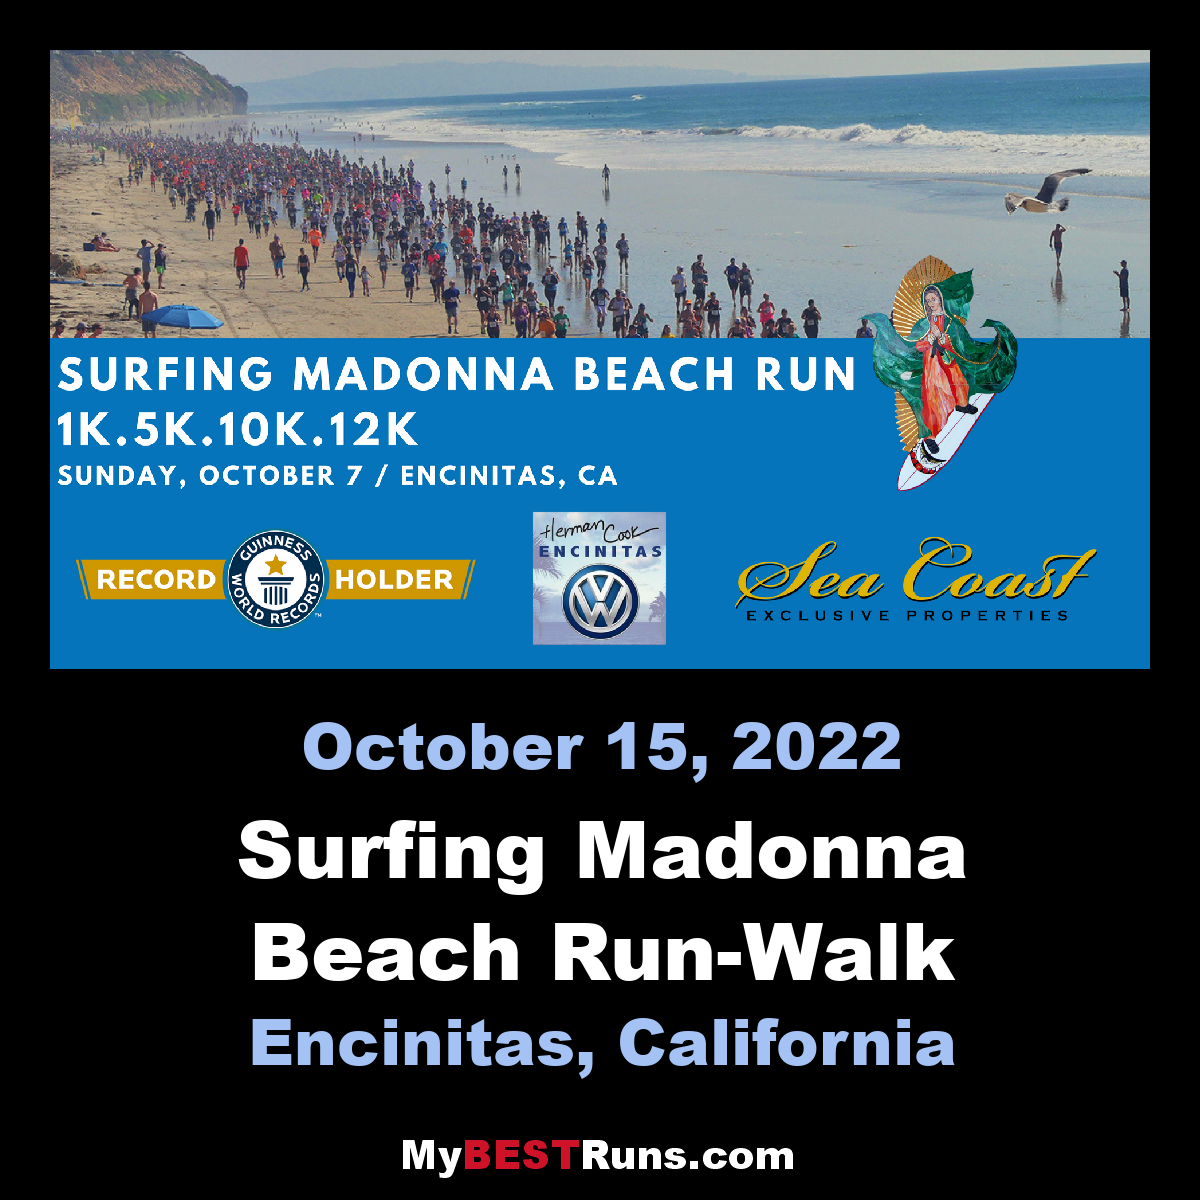 Surfing Madonna Beach Run-Walk